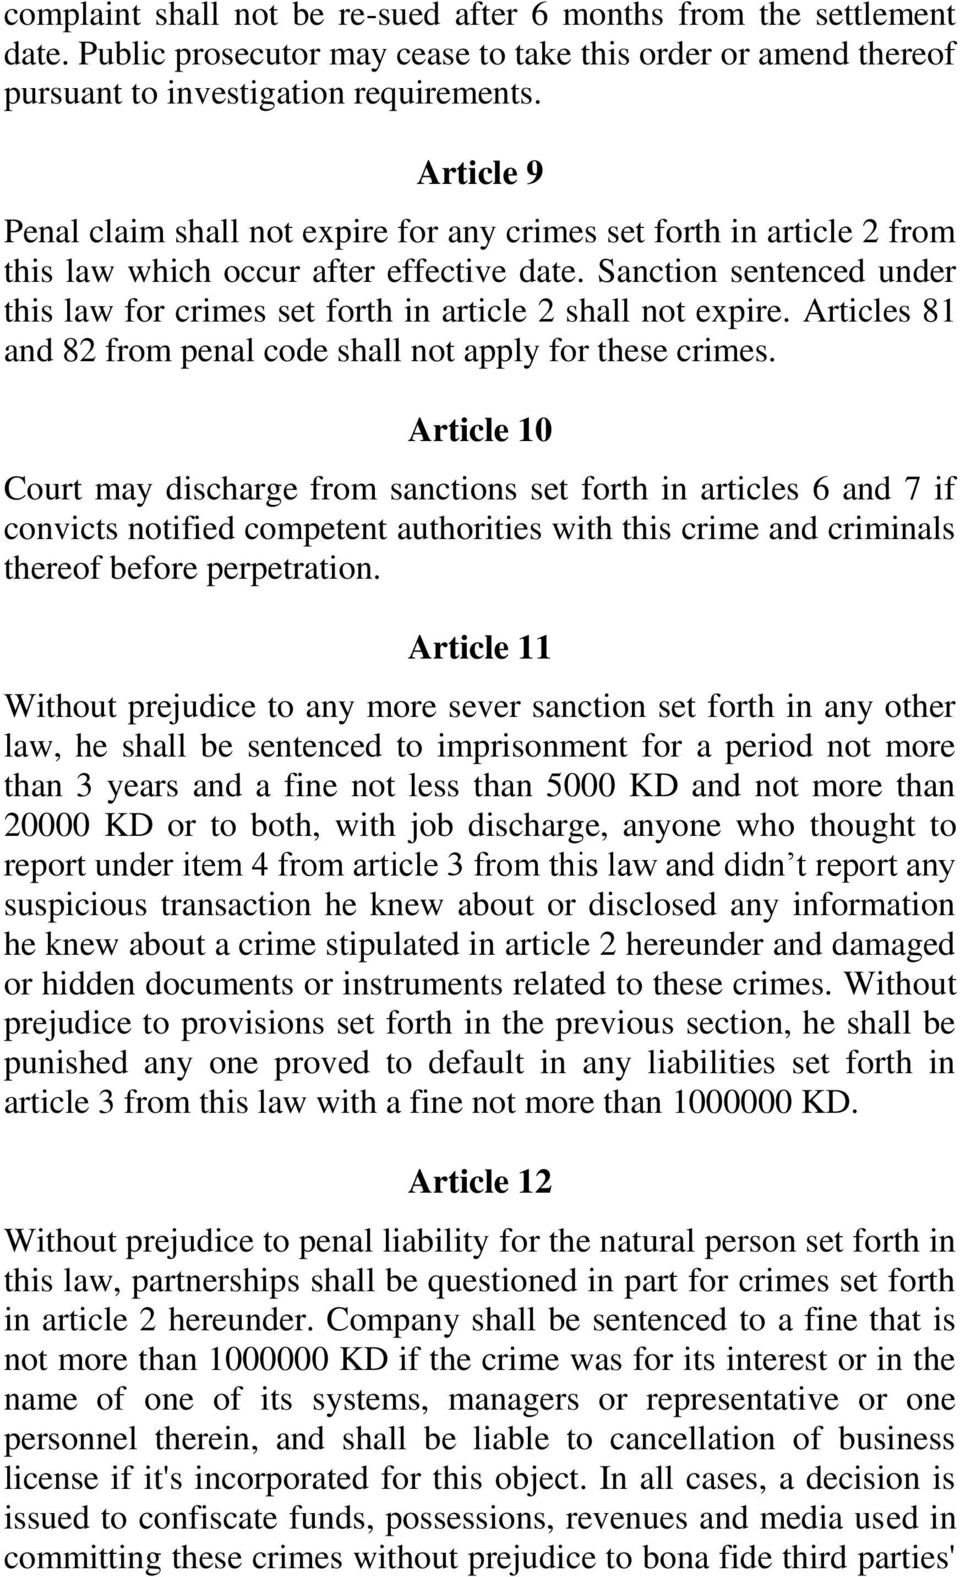 Sanction sentenced under this law for crimes set forth in article 2 shall not expire. Articles 81 and 82 from penal code shall not apply for these crimes.